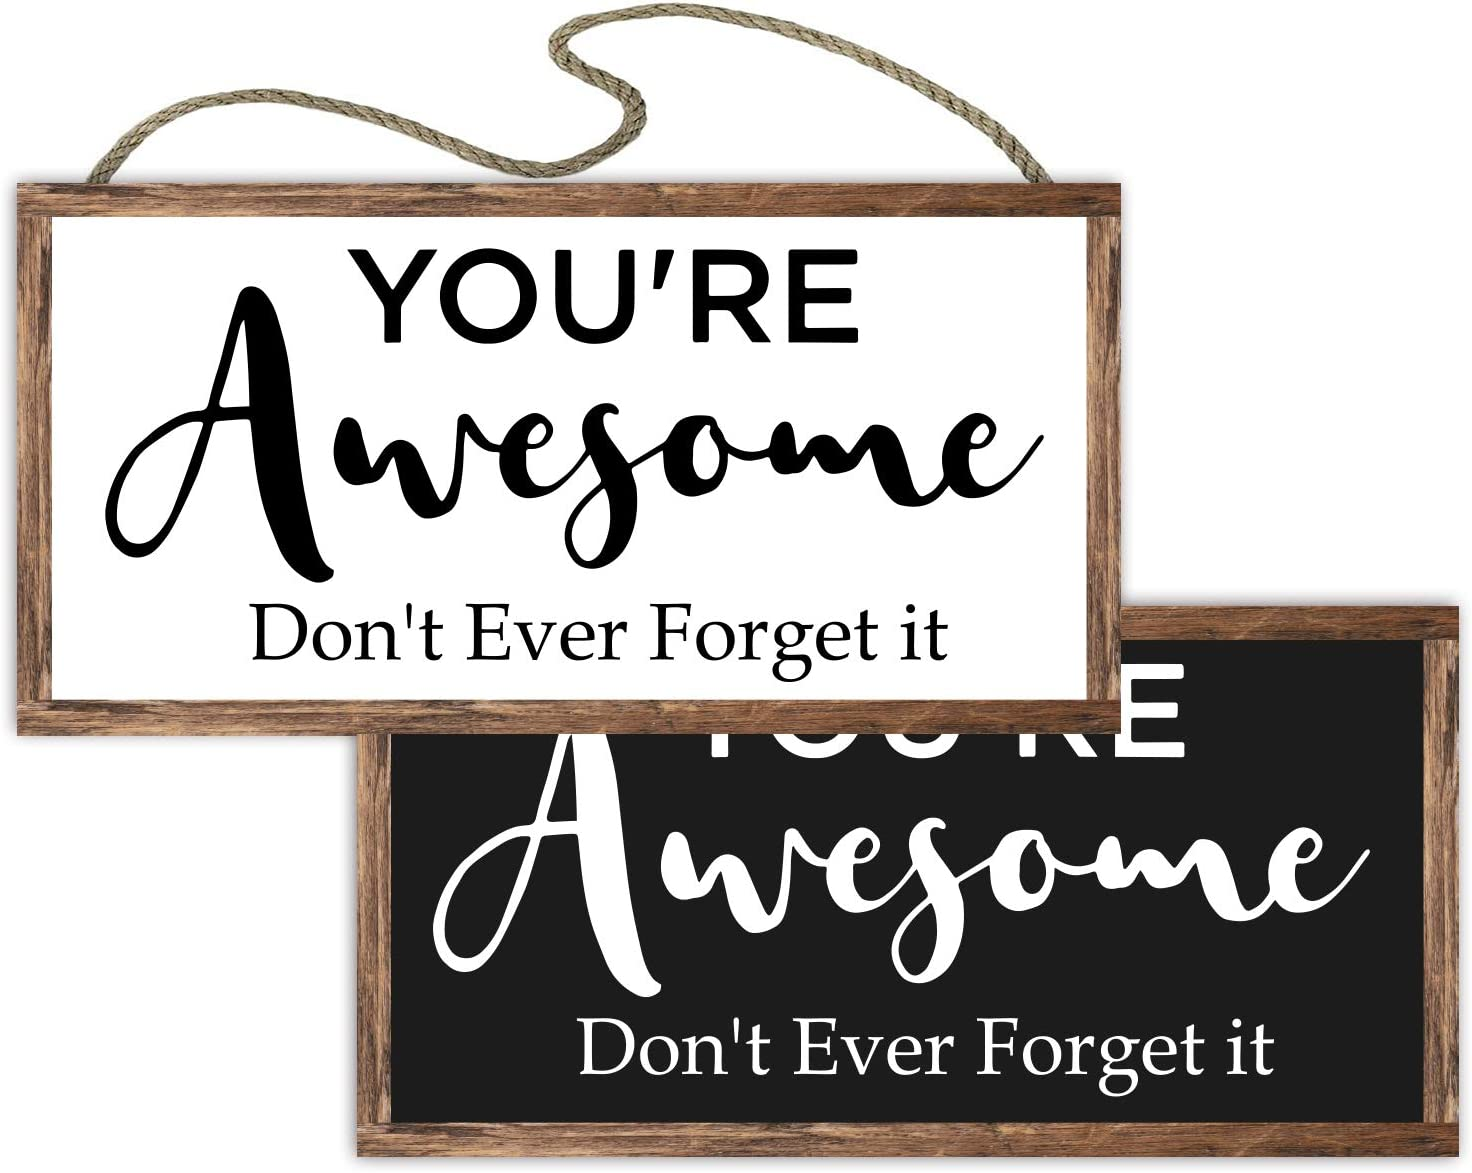 vizuzi Reversible Double Sided Sign with Inspirational Saying for Home and Office Decor - You are Awesome Don't Ever Forget It - A for Your Family, Friends and Colleagues.